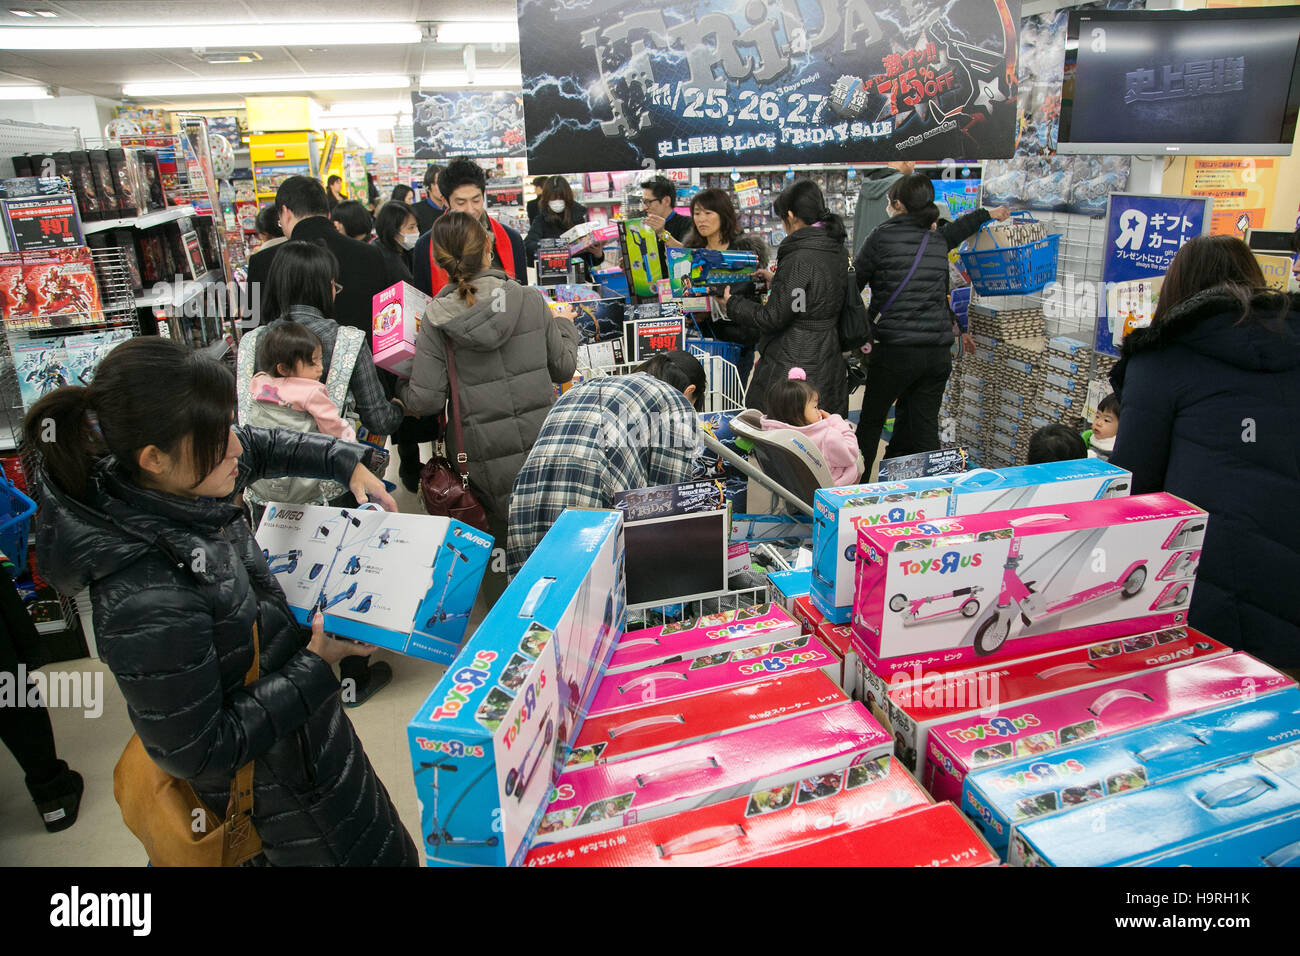 Customers Shop For Toys On Black Friday At A ToysRUs And Stock - Toys r us black friday store map 2016